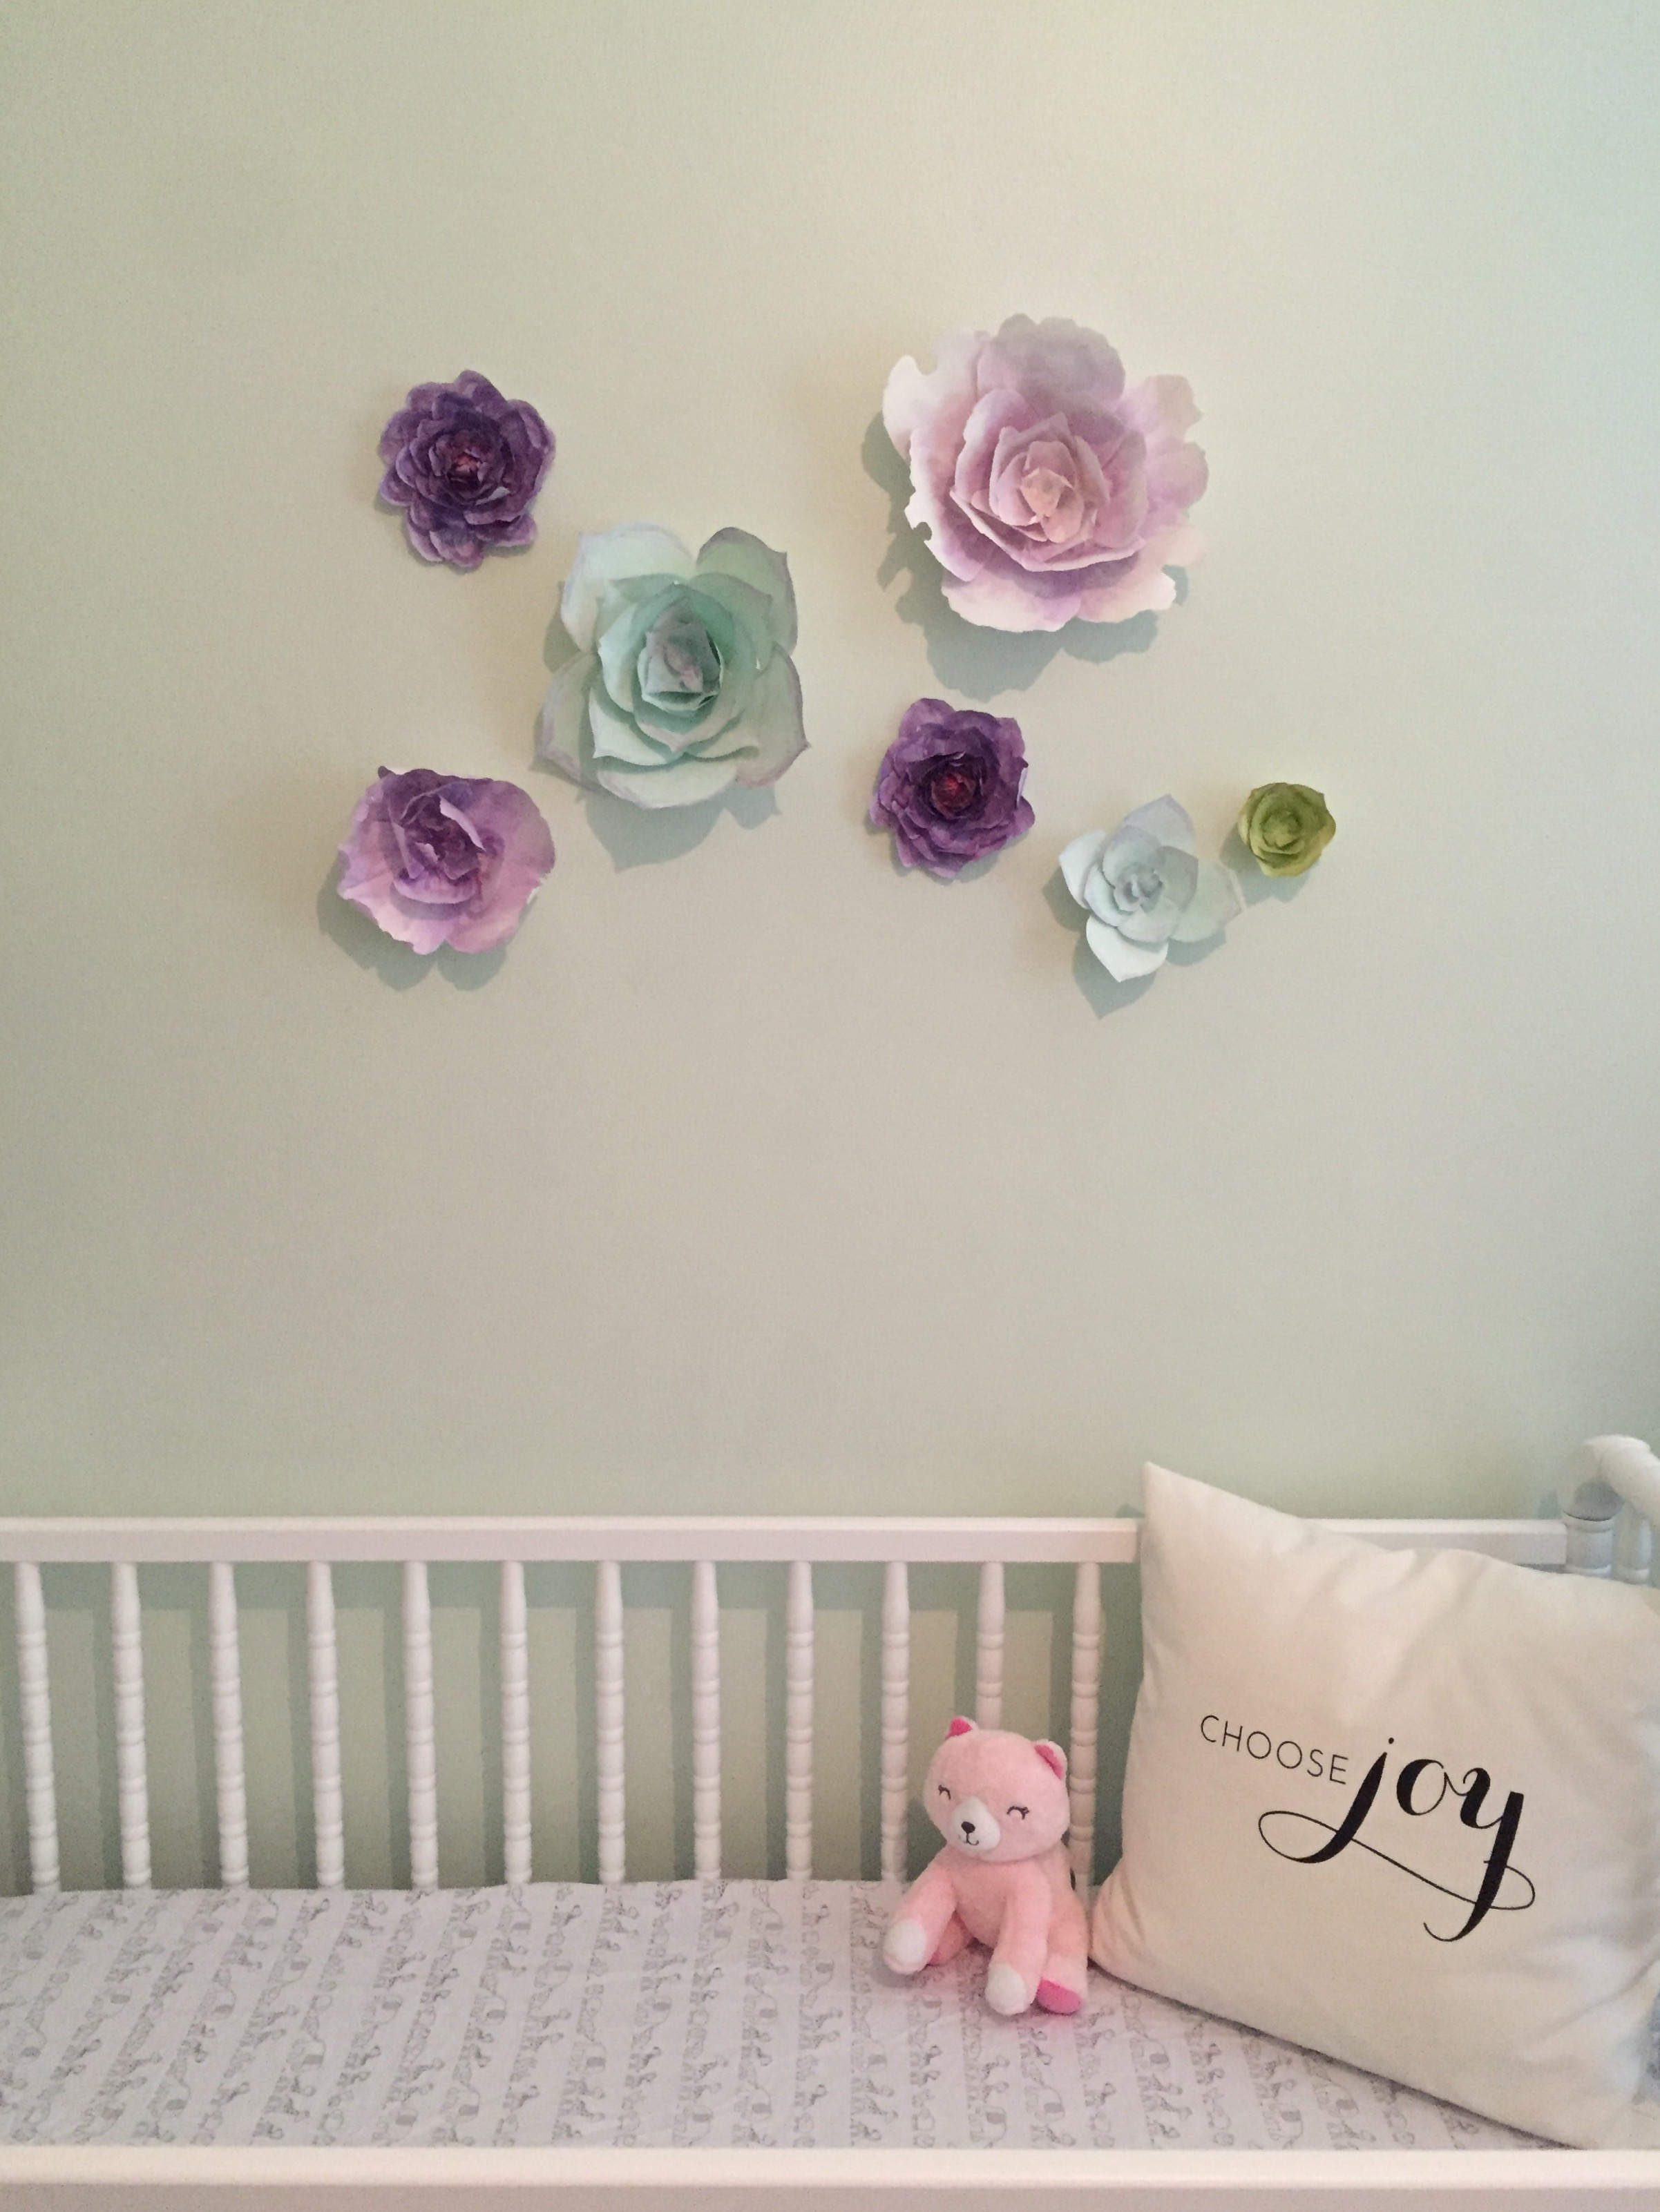 These beautiful paper flowers were made for my branding shoot by my friend Camberly of  Sweet Pear Paper . I didn't want to hang anything heavy over the crib and these are just paper - BINGO! ps- YES, I know you can't keep a pillow in an infant's crib.